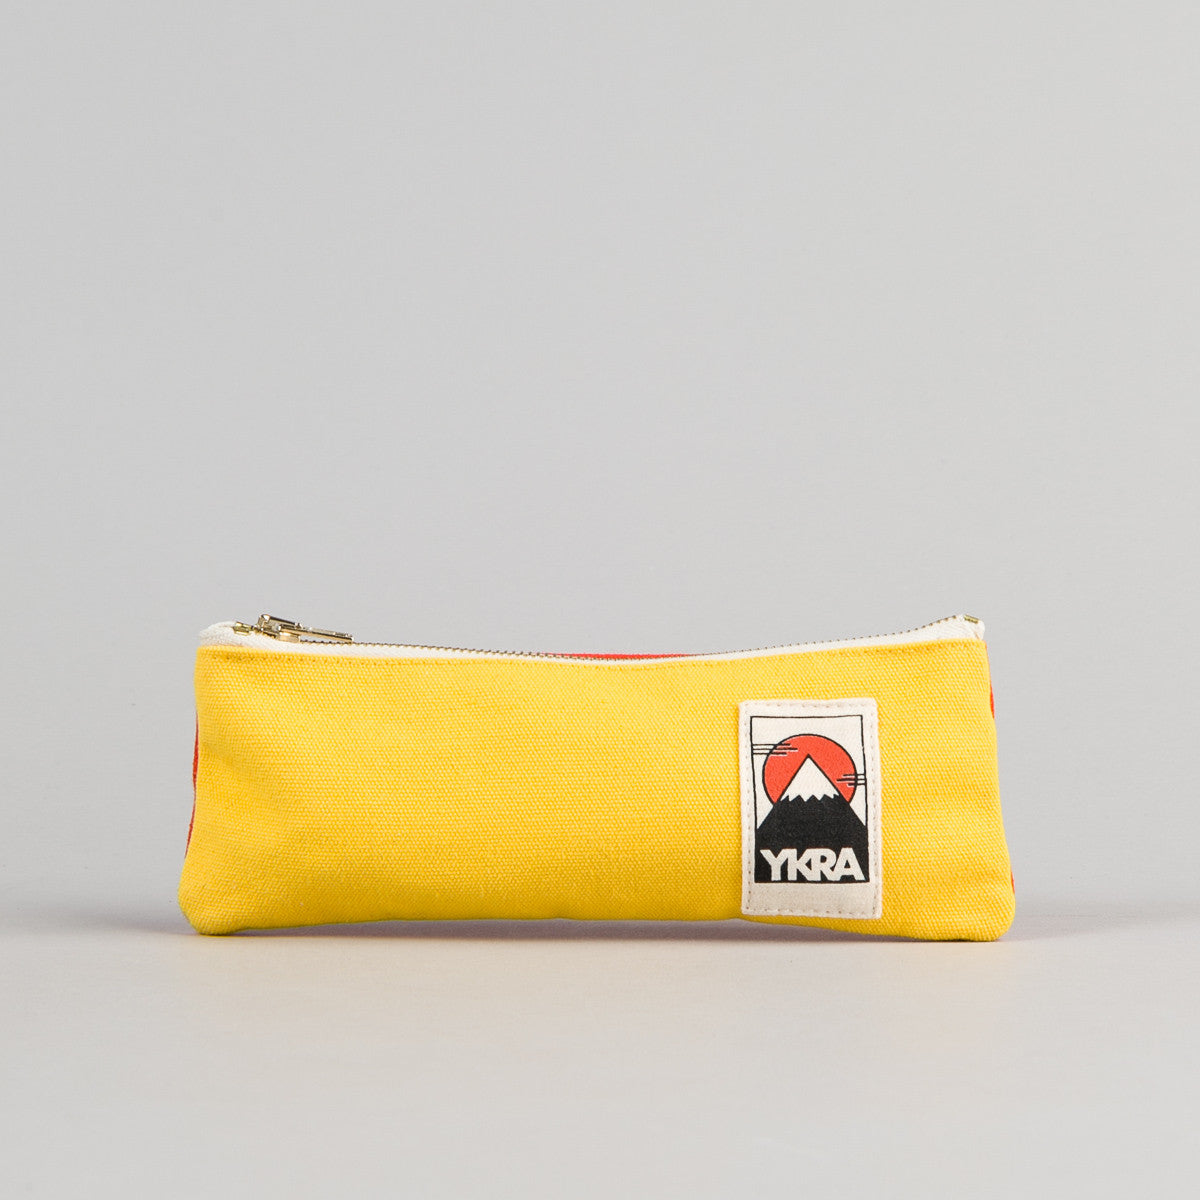 YKRA Pencil Case - Yellow - Orange